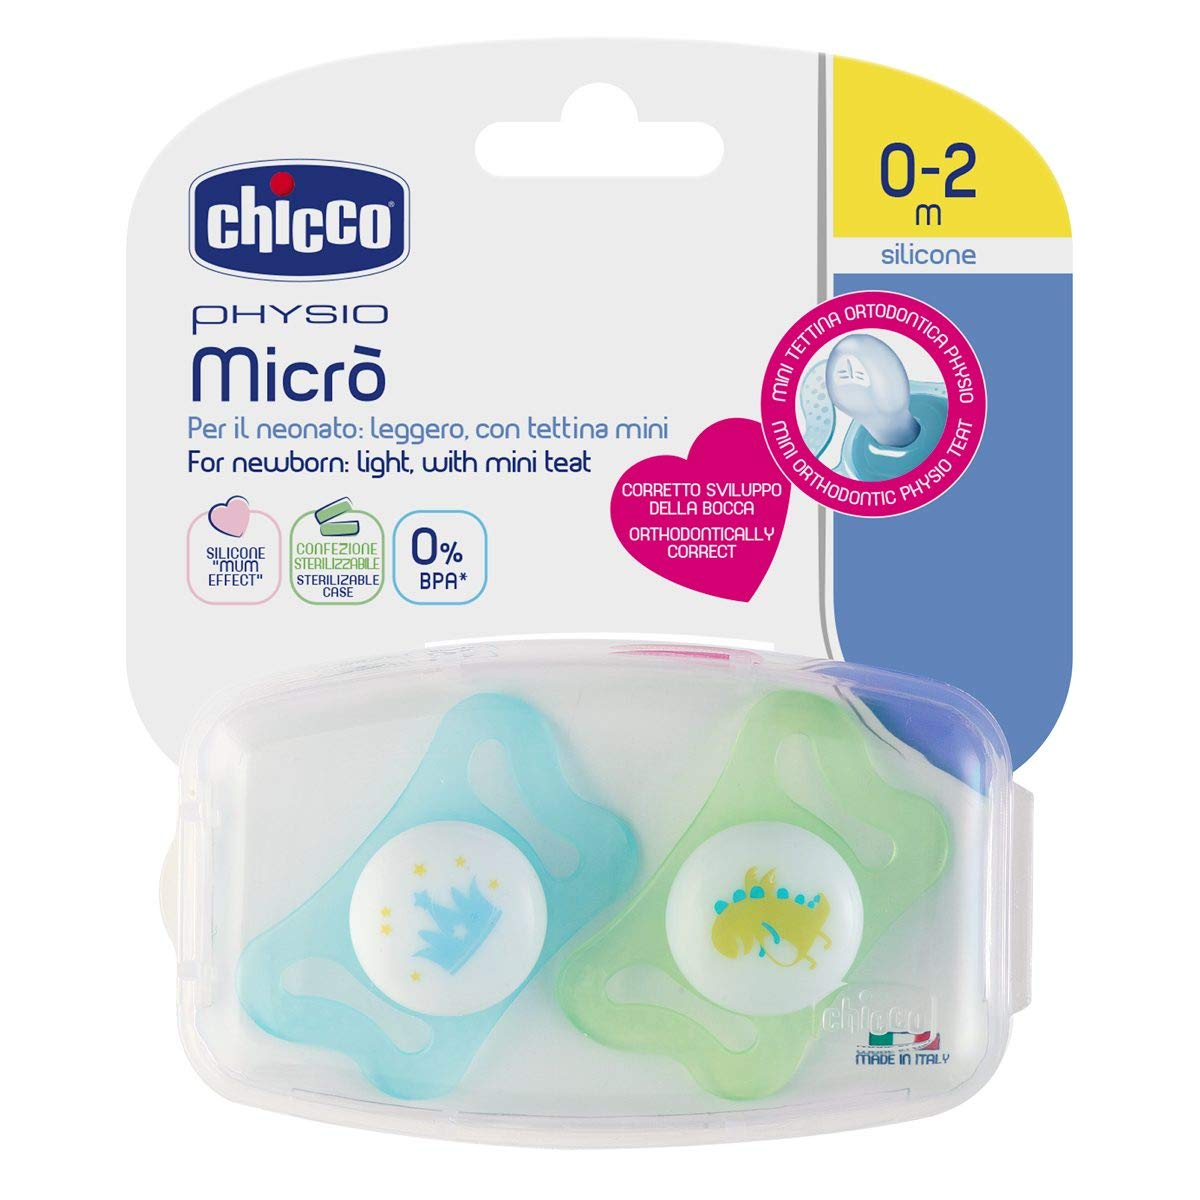 Amazon.com: Chicco Physio Soother Boy Micro 0-2Mesi 2units: Health ...